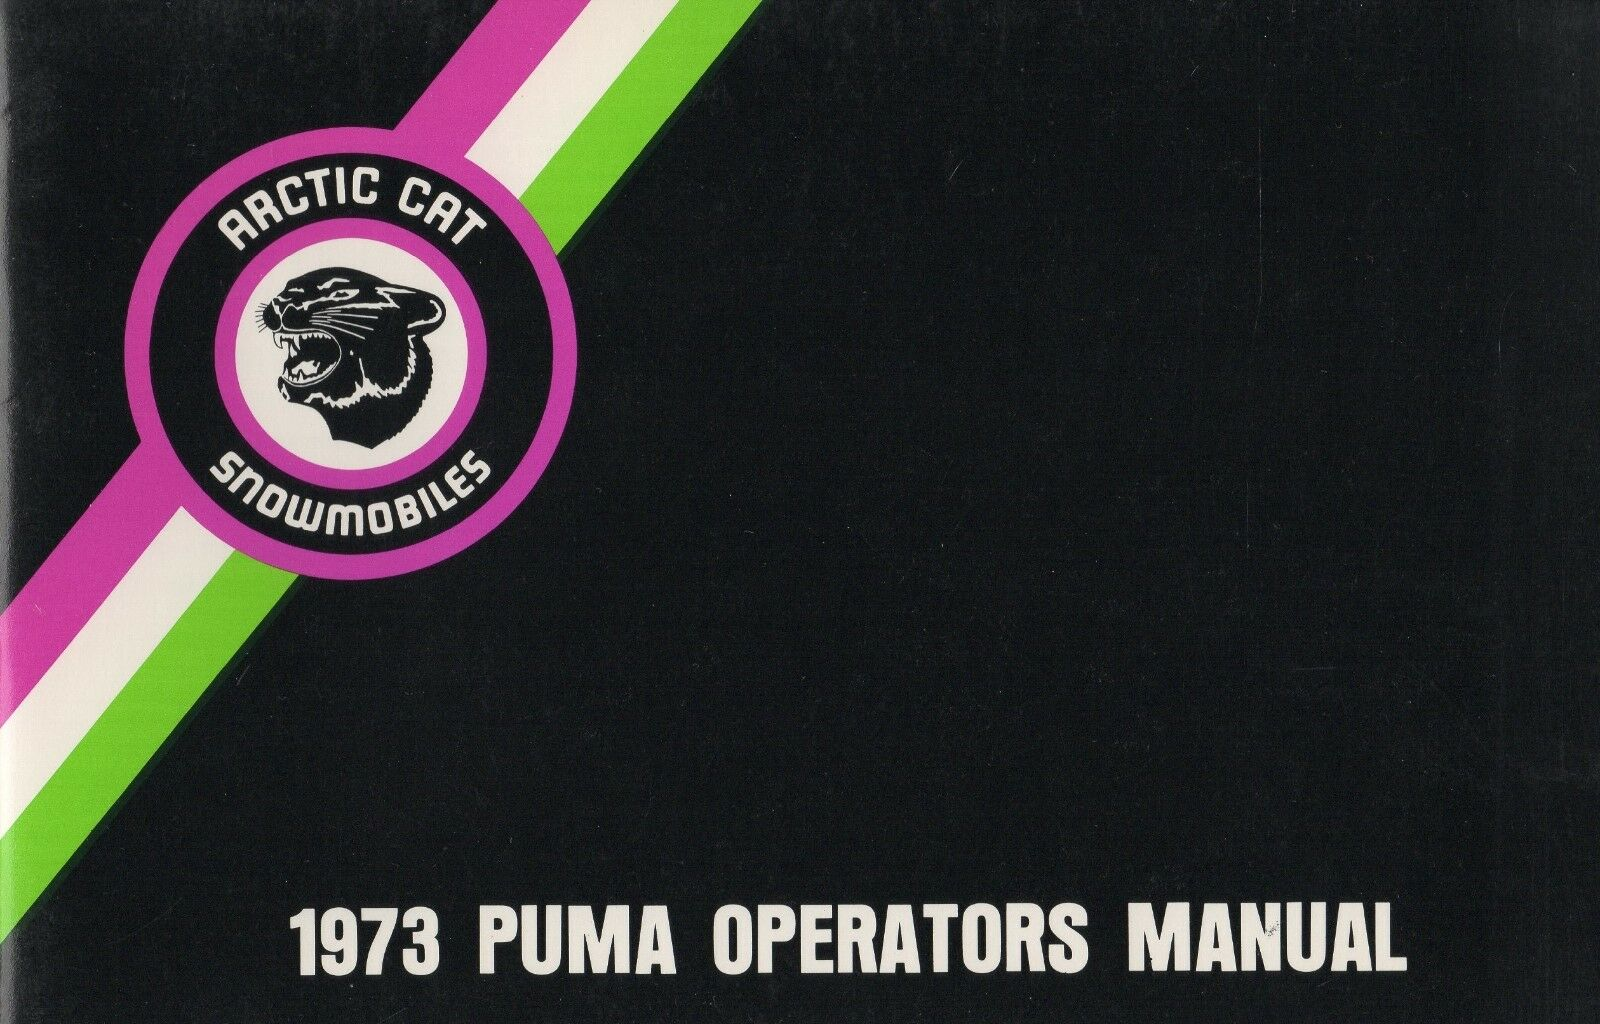 1973 ARCTIC CAT SNOWMOBILE PUMA OPERATOR'S MANUAL  P N 2254-013 (170)